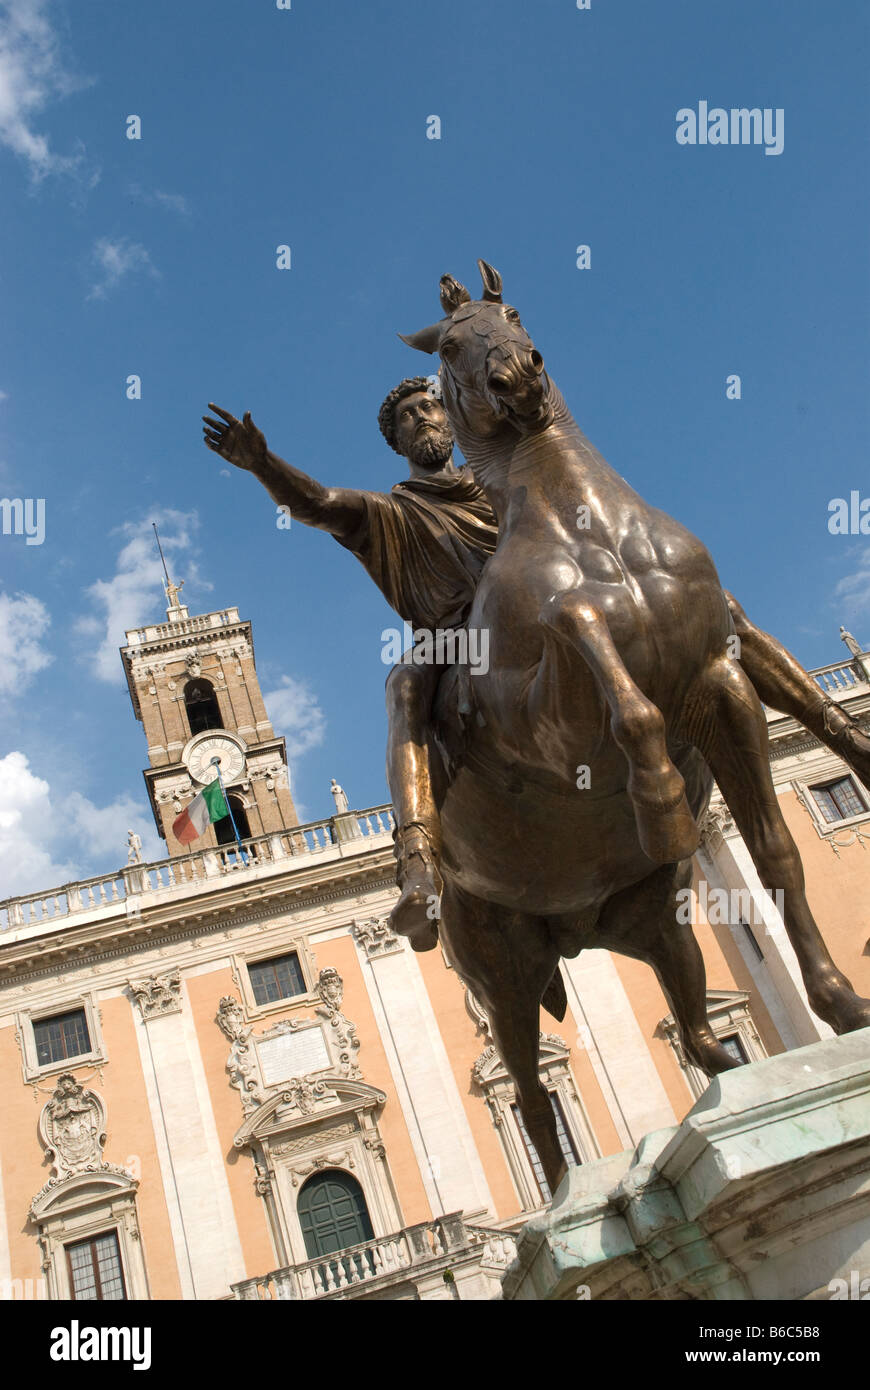 The statue of a mounted rider in the centre of the Piazza Del Campidoglio at the western end of the Roman Forum - Stock Image